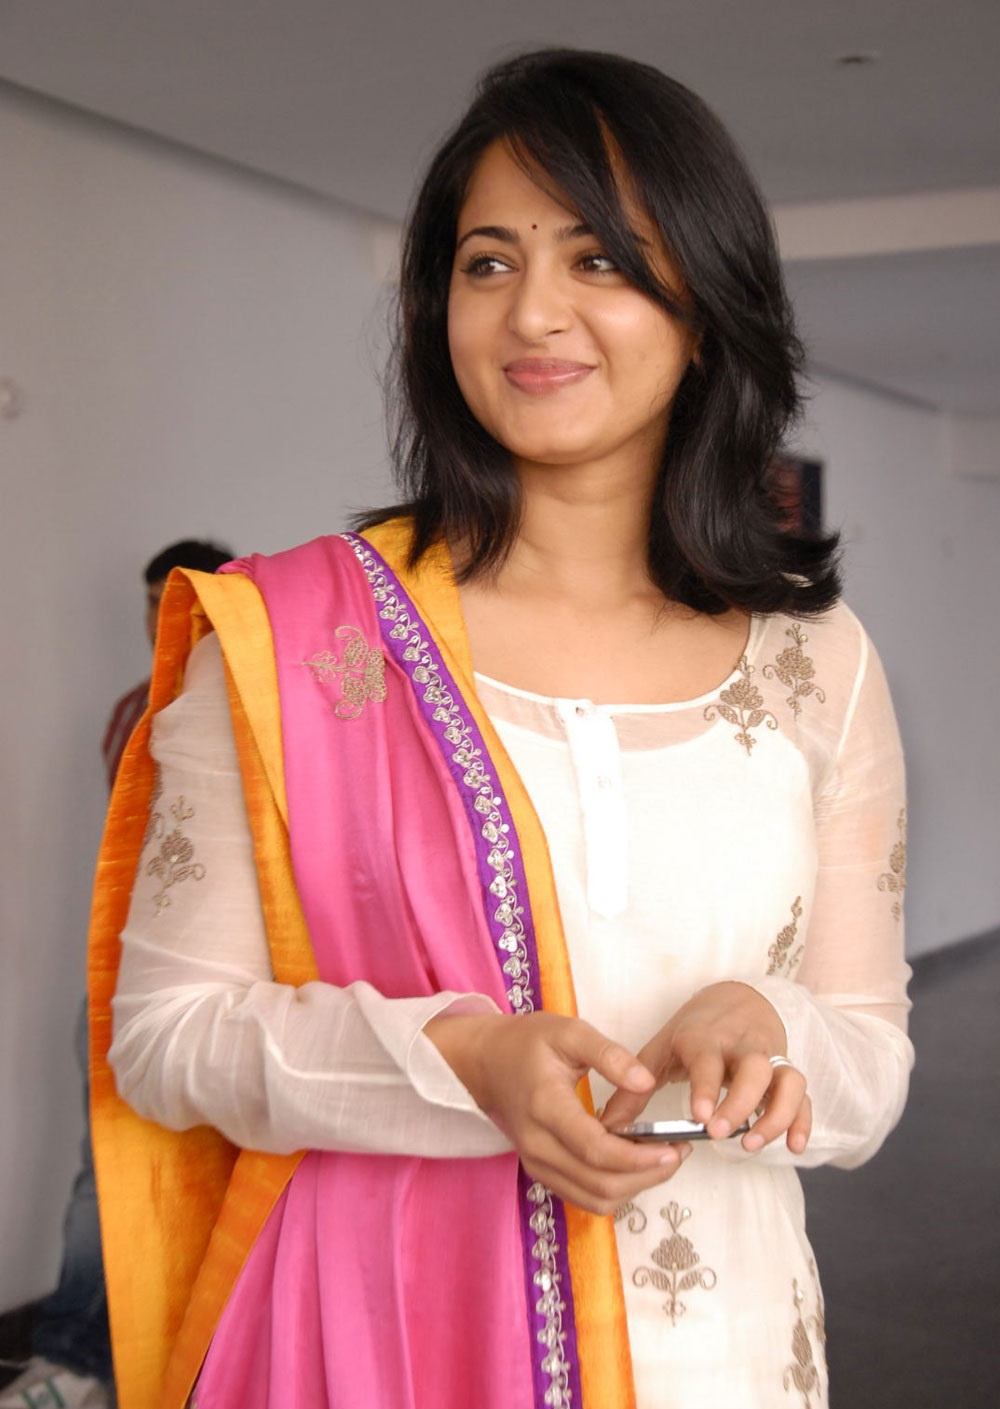 Anushka Shetty in Churidar Suit